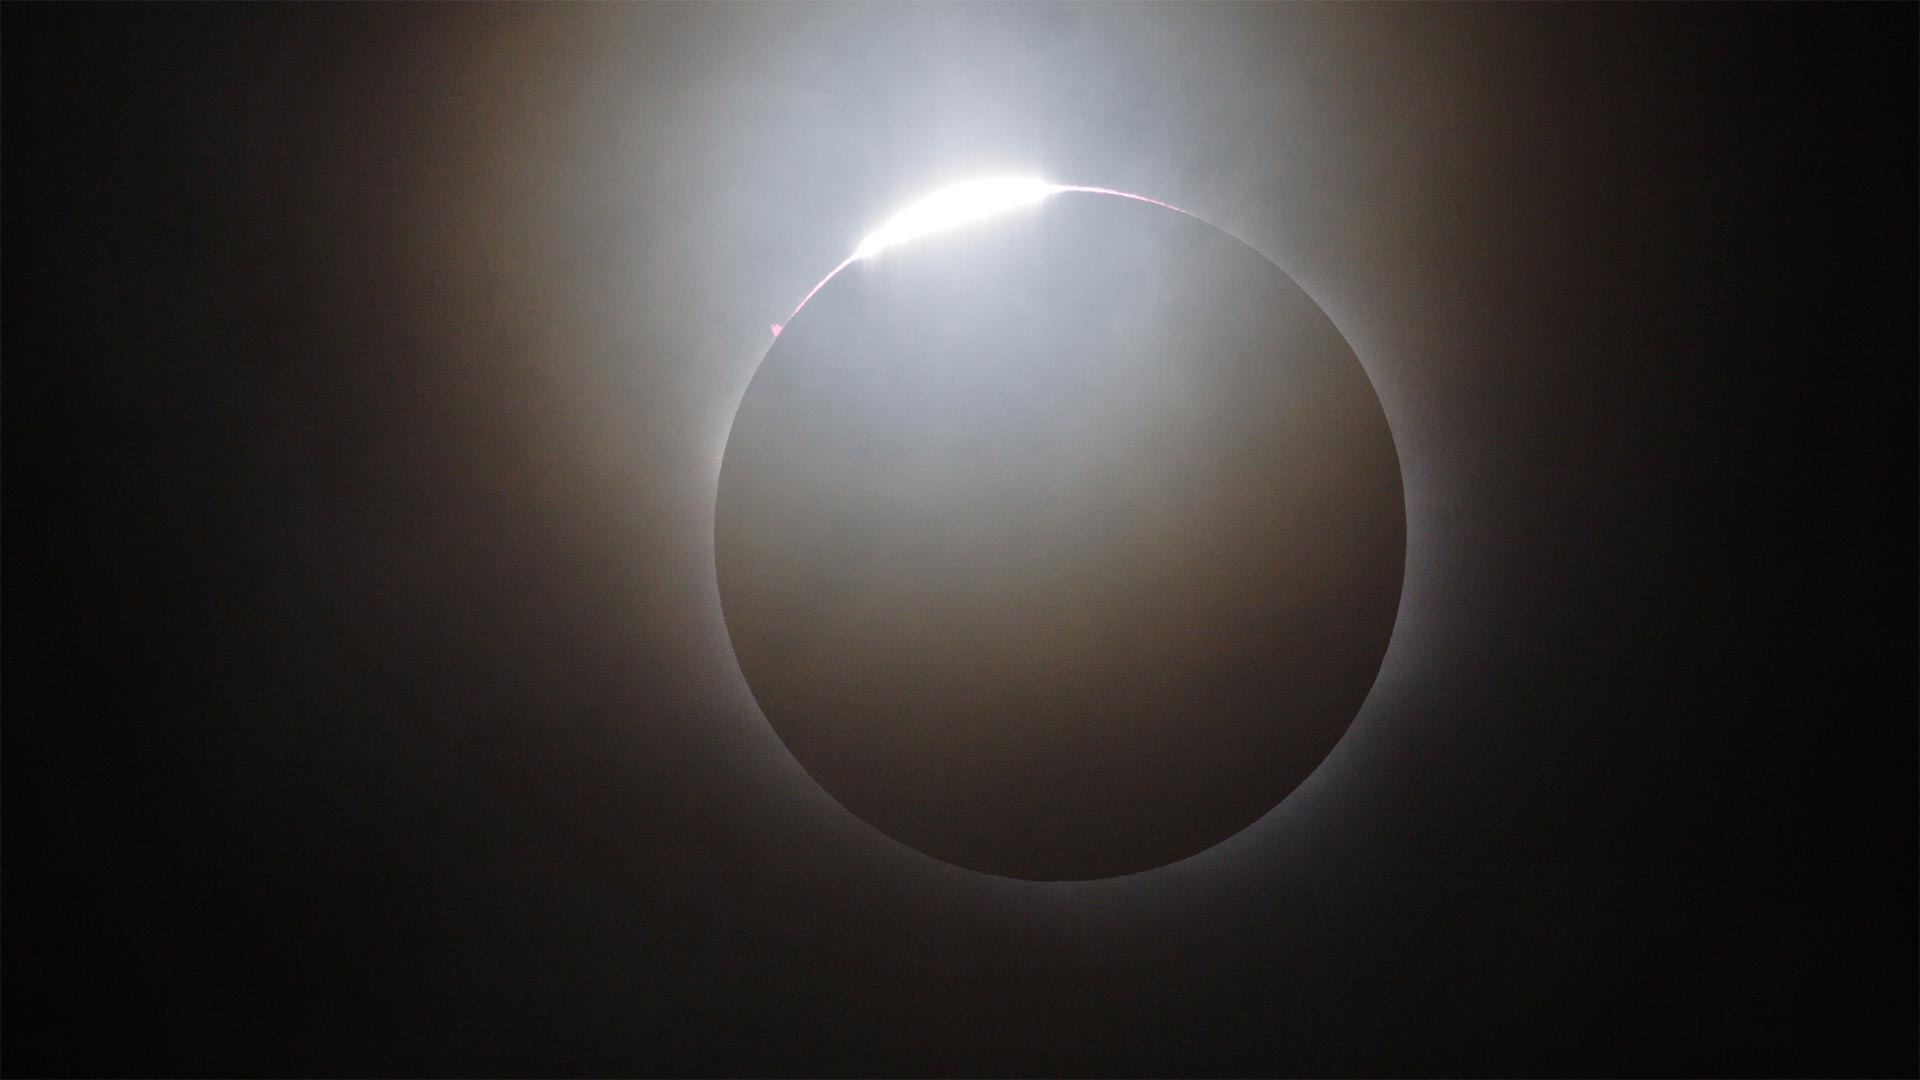 Diamond ring during total solar eclipse of 2006